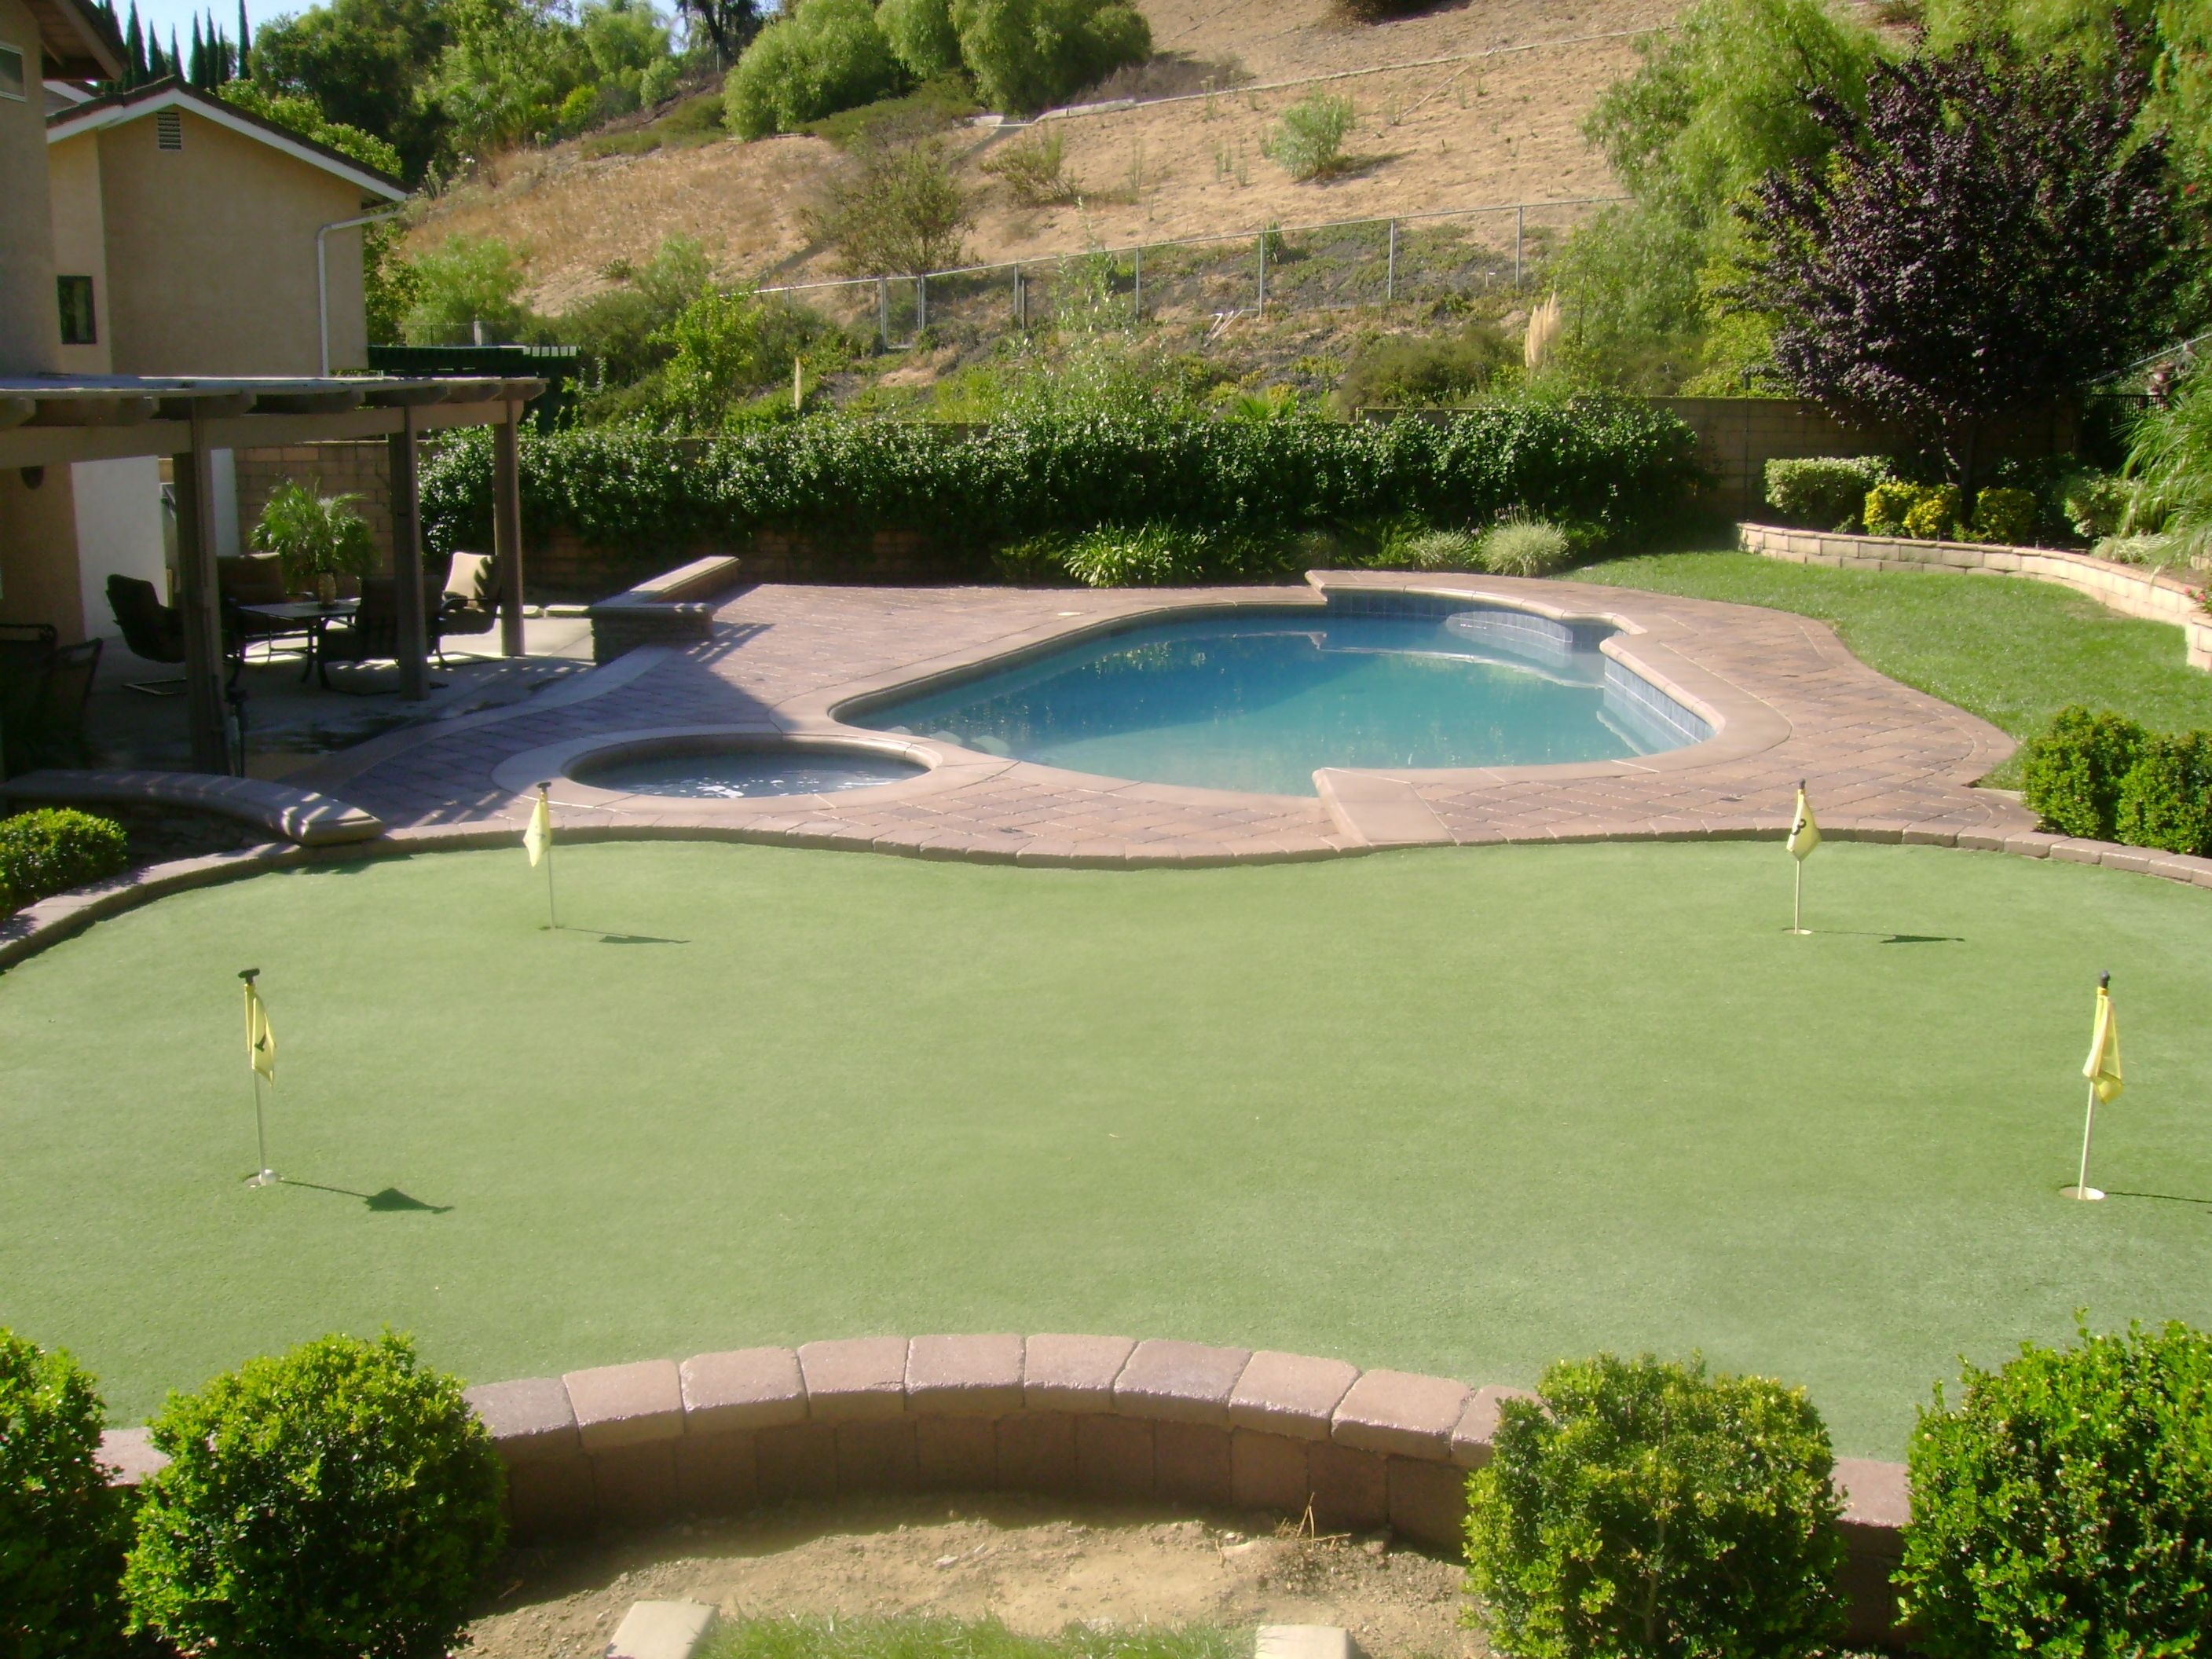 Putting Green Off The Pool Deck Outdoor Spaces